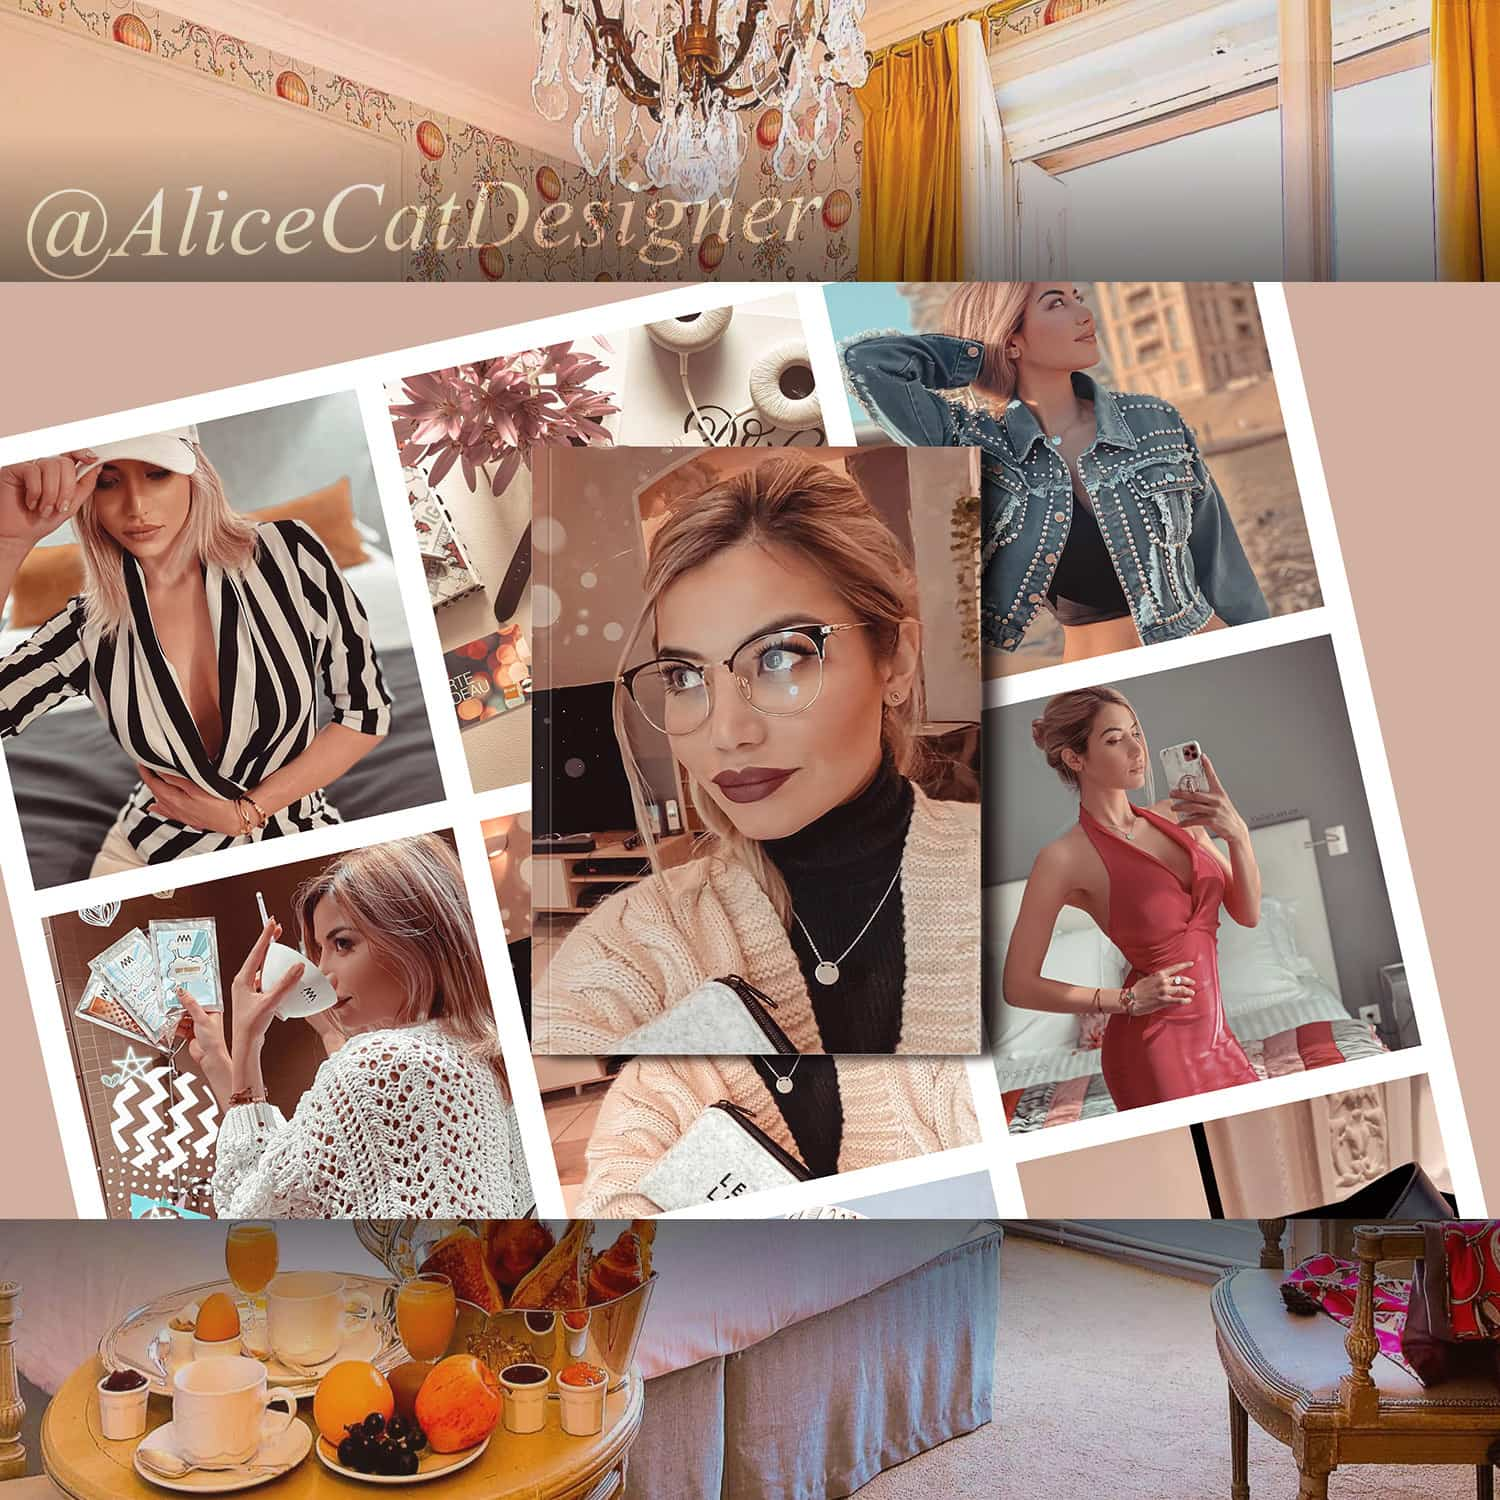 Influencer Alice Cathelineau @AliceCatDesigner launches Instagram training